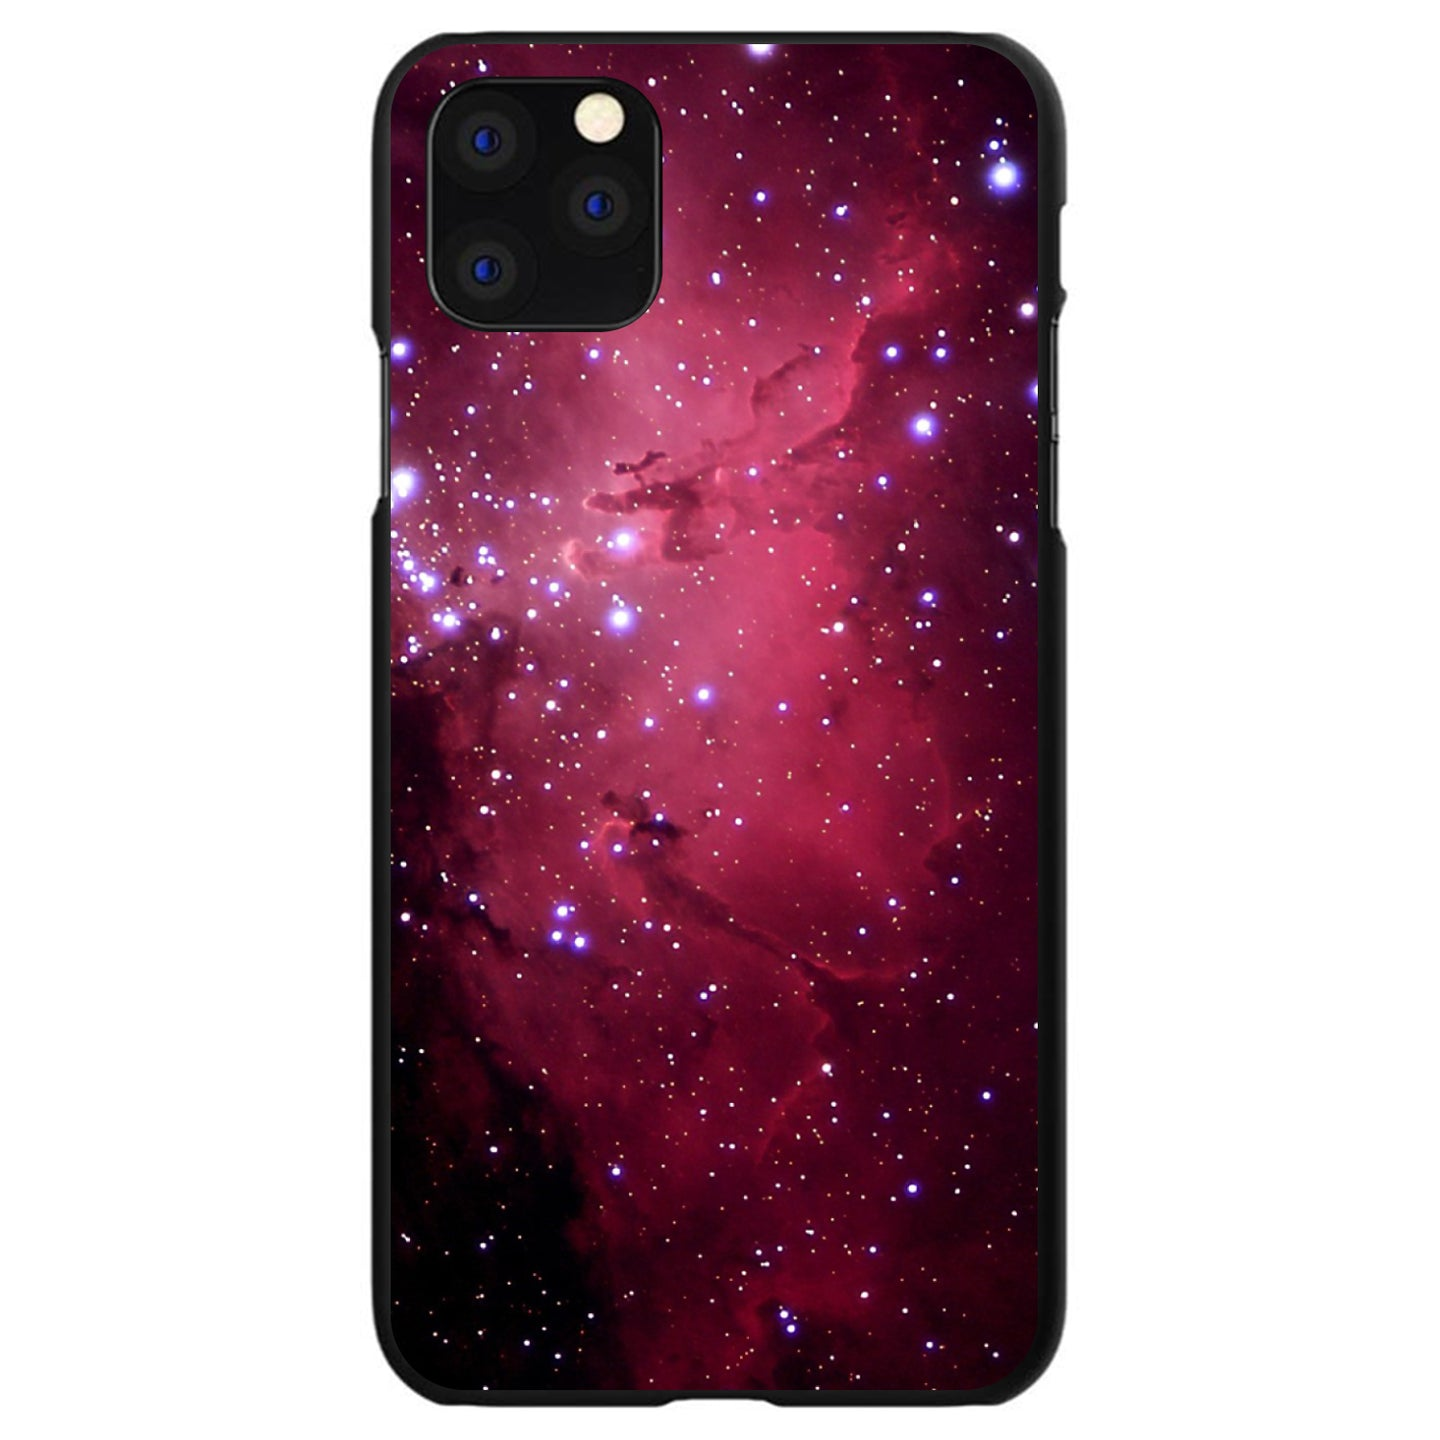 DistinctInk® Hard Plastic Snap-On Case for Apple iPhone - Hot Pink Black Stars Nebula